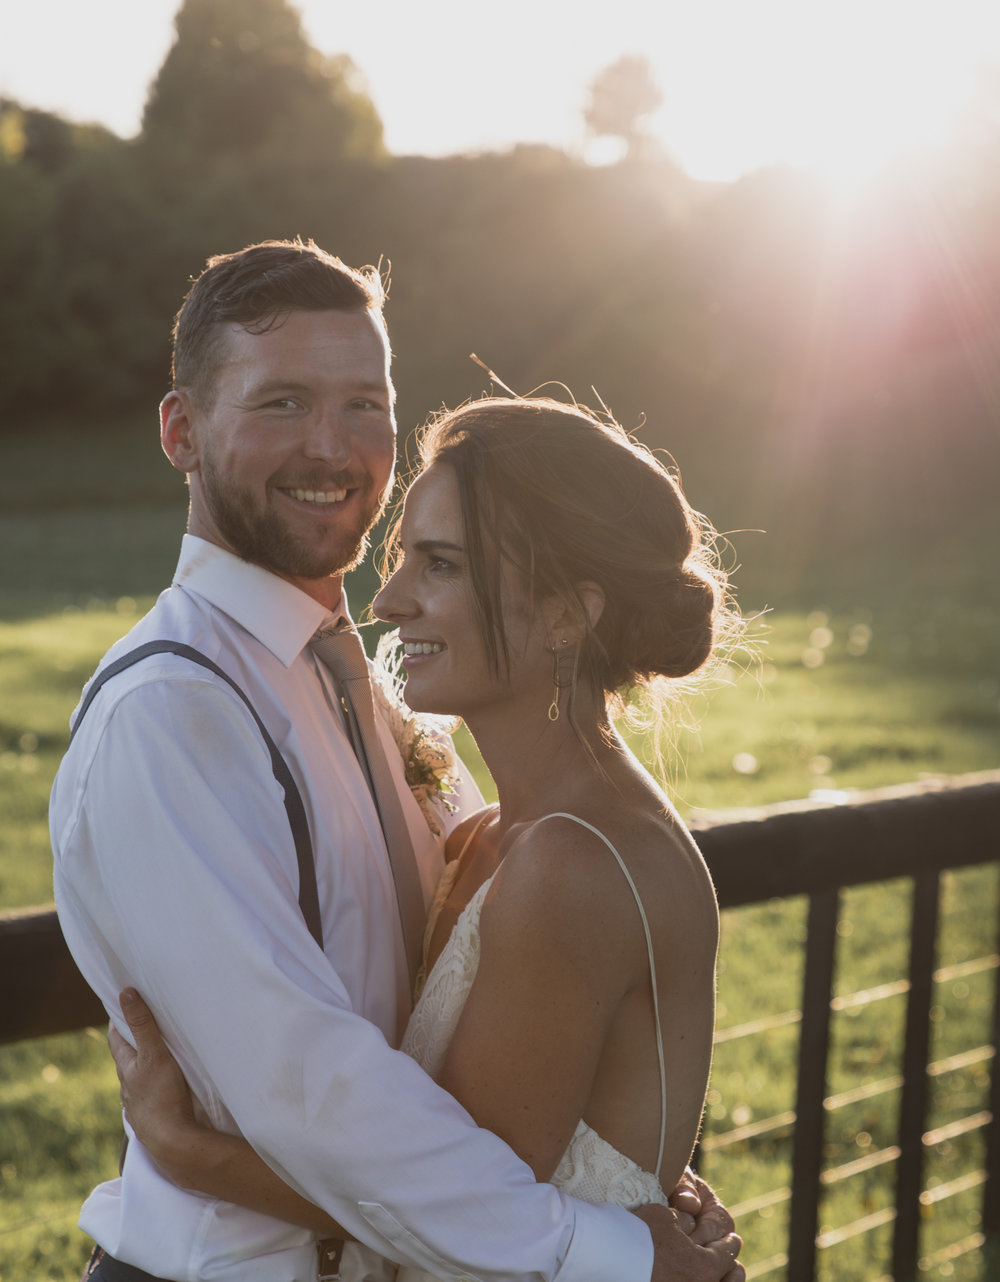 wedding-at-the-red-barn-new-zealand-wedding-photographer-sunset-bride-and-groom.jpg